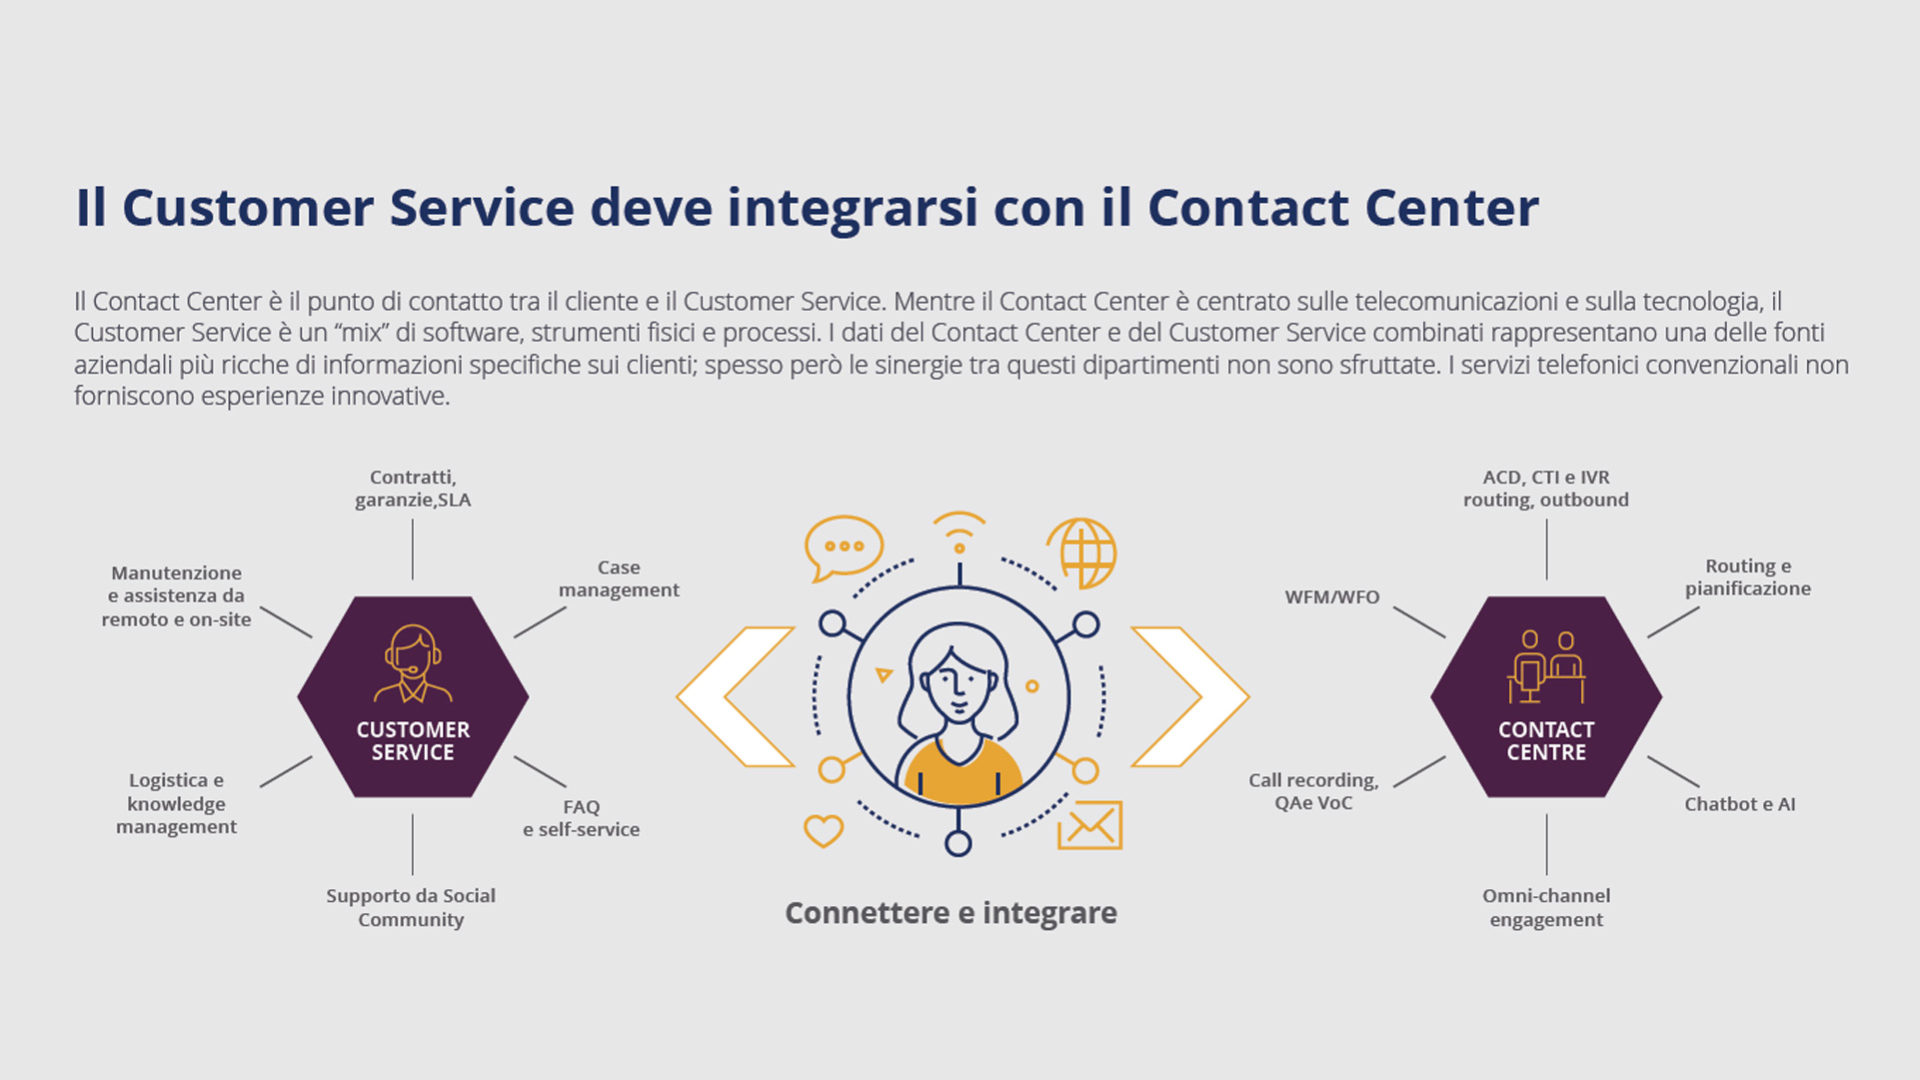 Figura 1 - Il Customer Service deve integrarsi conil Contact Center. Fonte: IDC